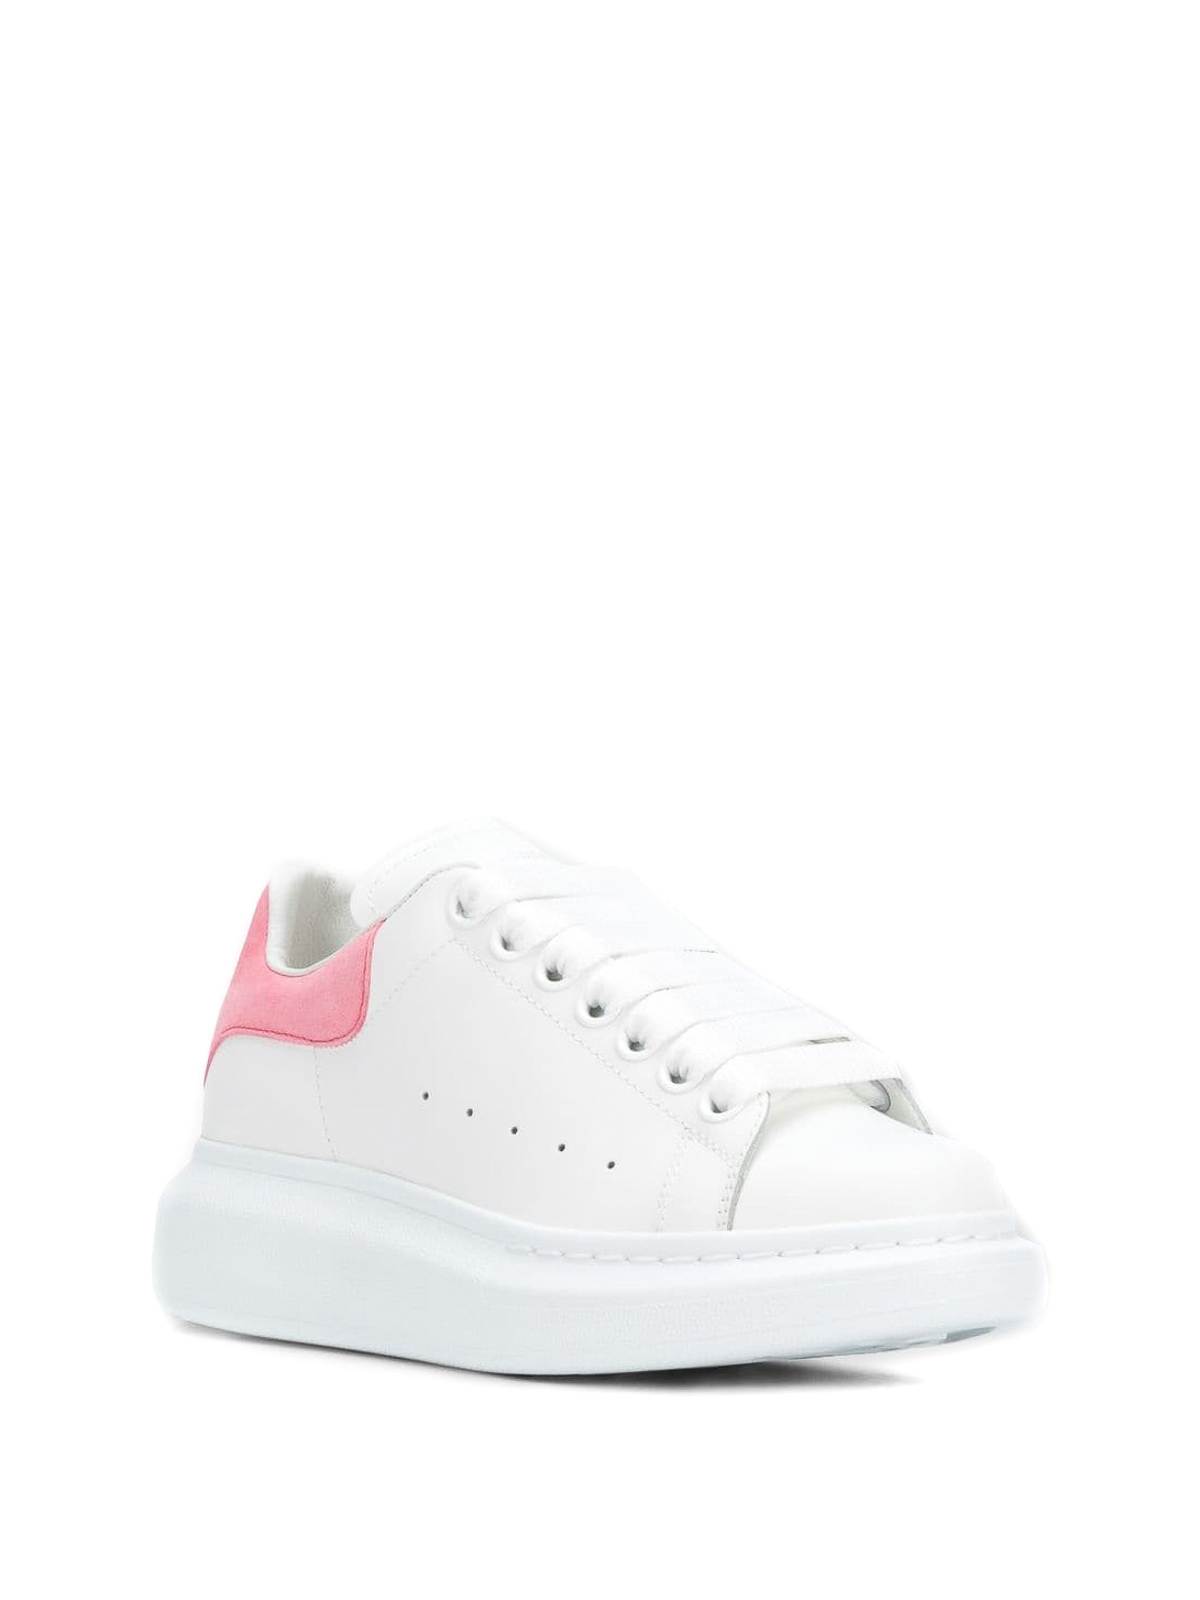 62a7a7b966d1 ALEXANDER MCQUEEN  trainers online - Oversized pink back white sneakers